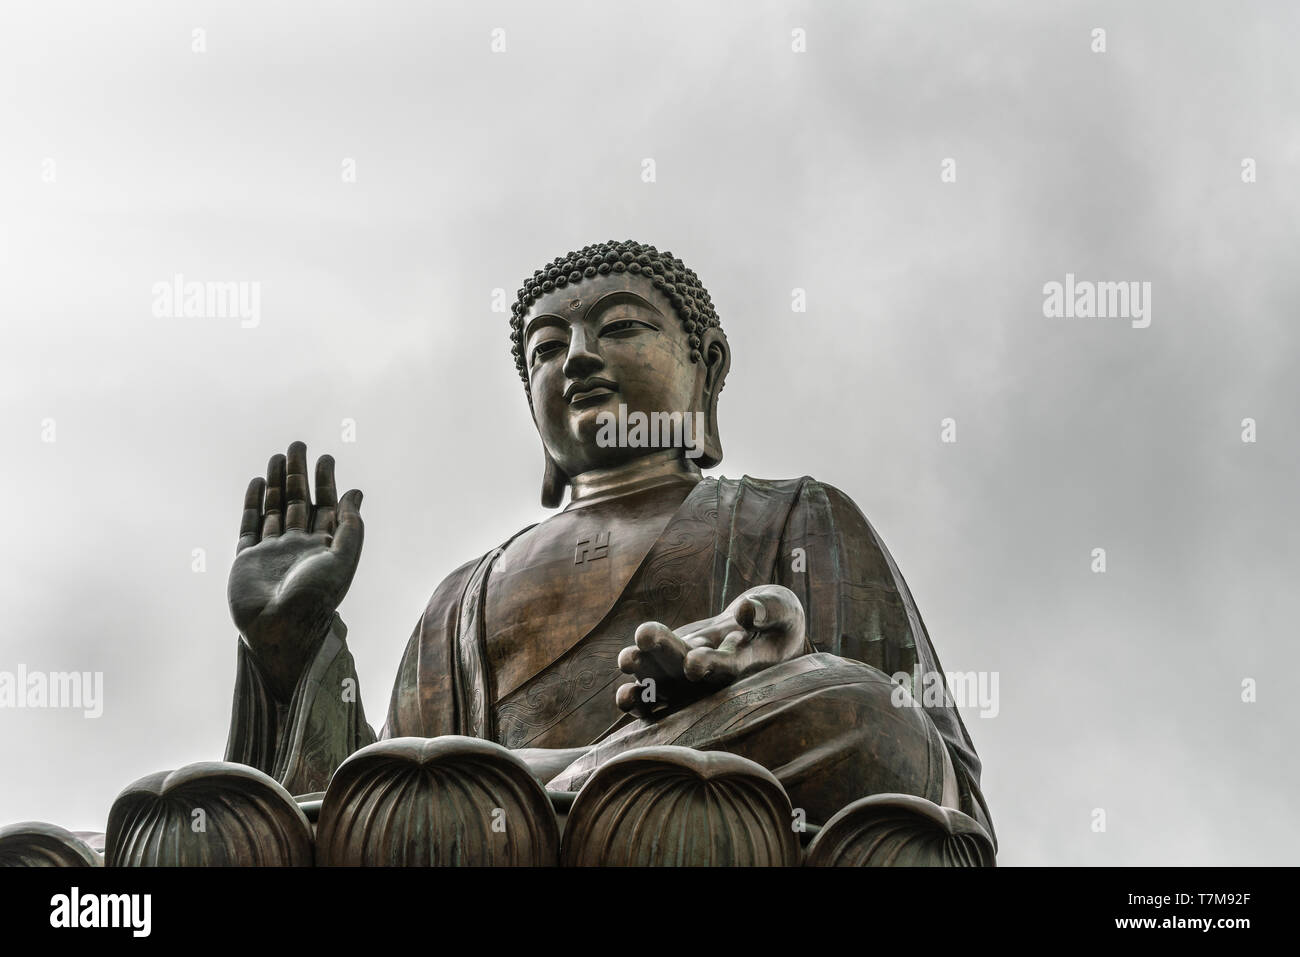 Hong Kong, China - March 7, 2019: Lantau Island. Frontal Closeup of Tian Tan Buddha statue from down under showing face, chest and lotus leaf under si - Stock Image